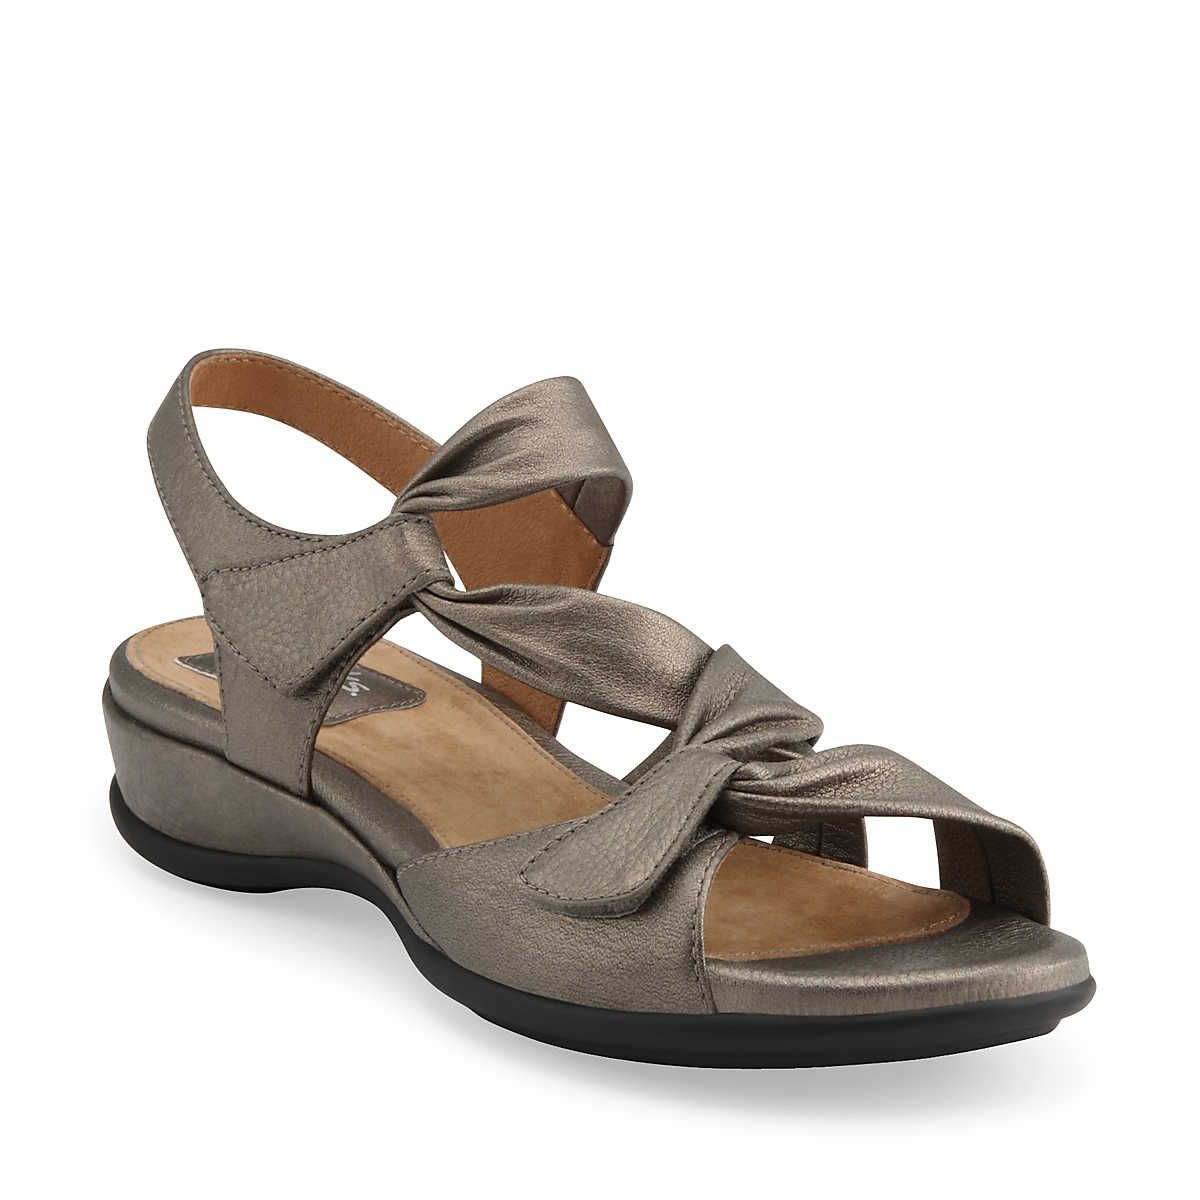 Wide Width Shoes, Wide Shoes, Metallic Leather, Black Leather, Women  Sandals, Clarks, Pewter, Leather Sandals, Marshmallow